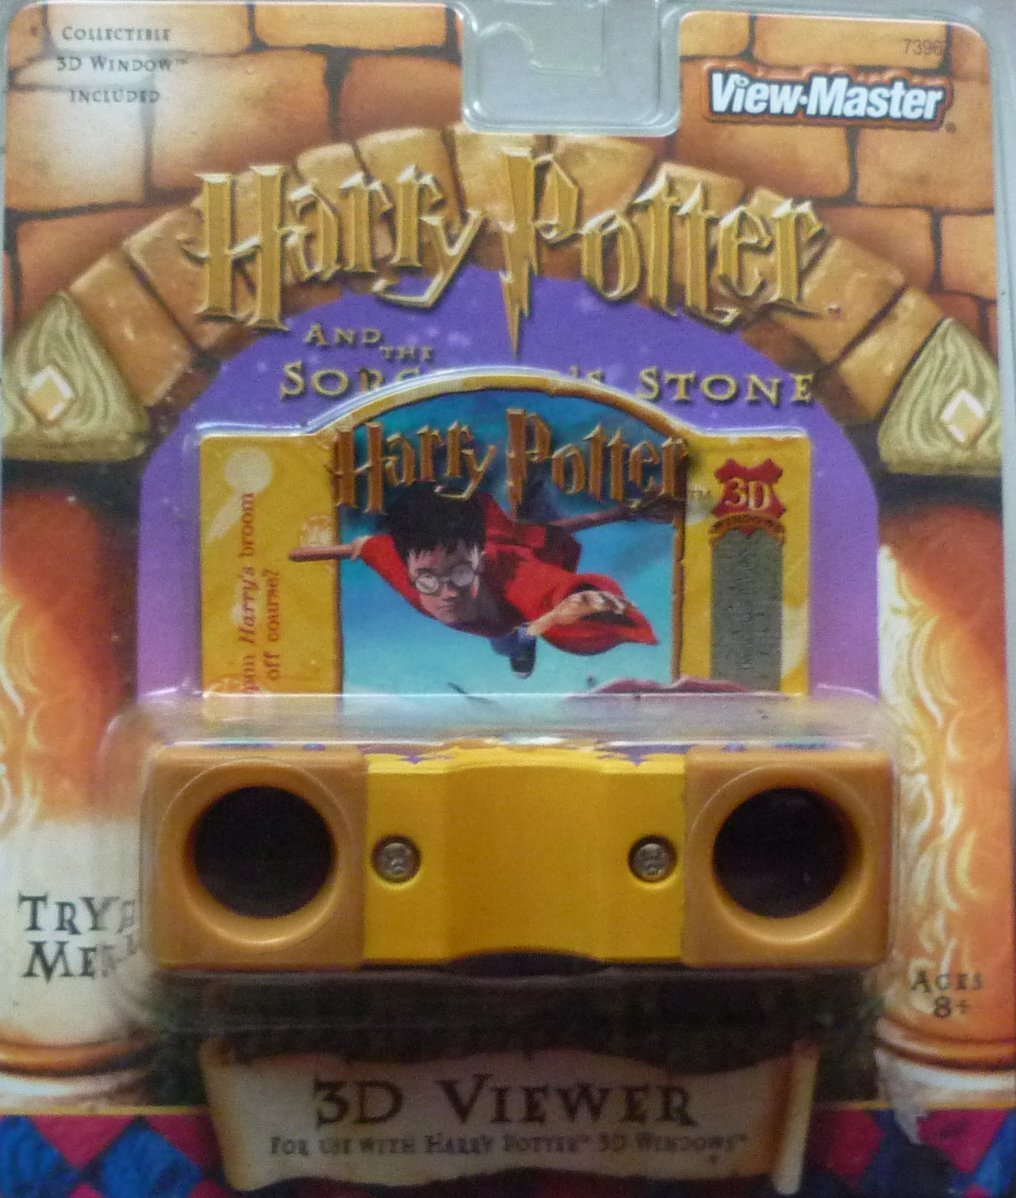 Harry Potter View Master 3D Viewer